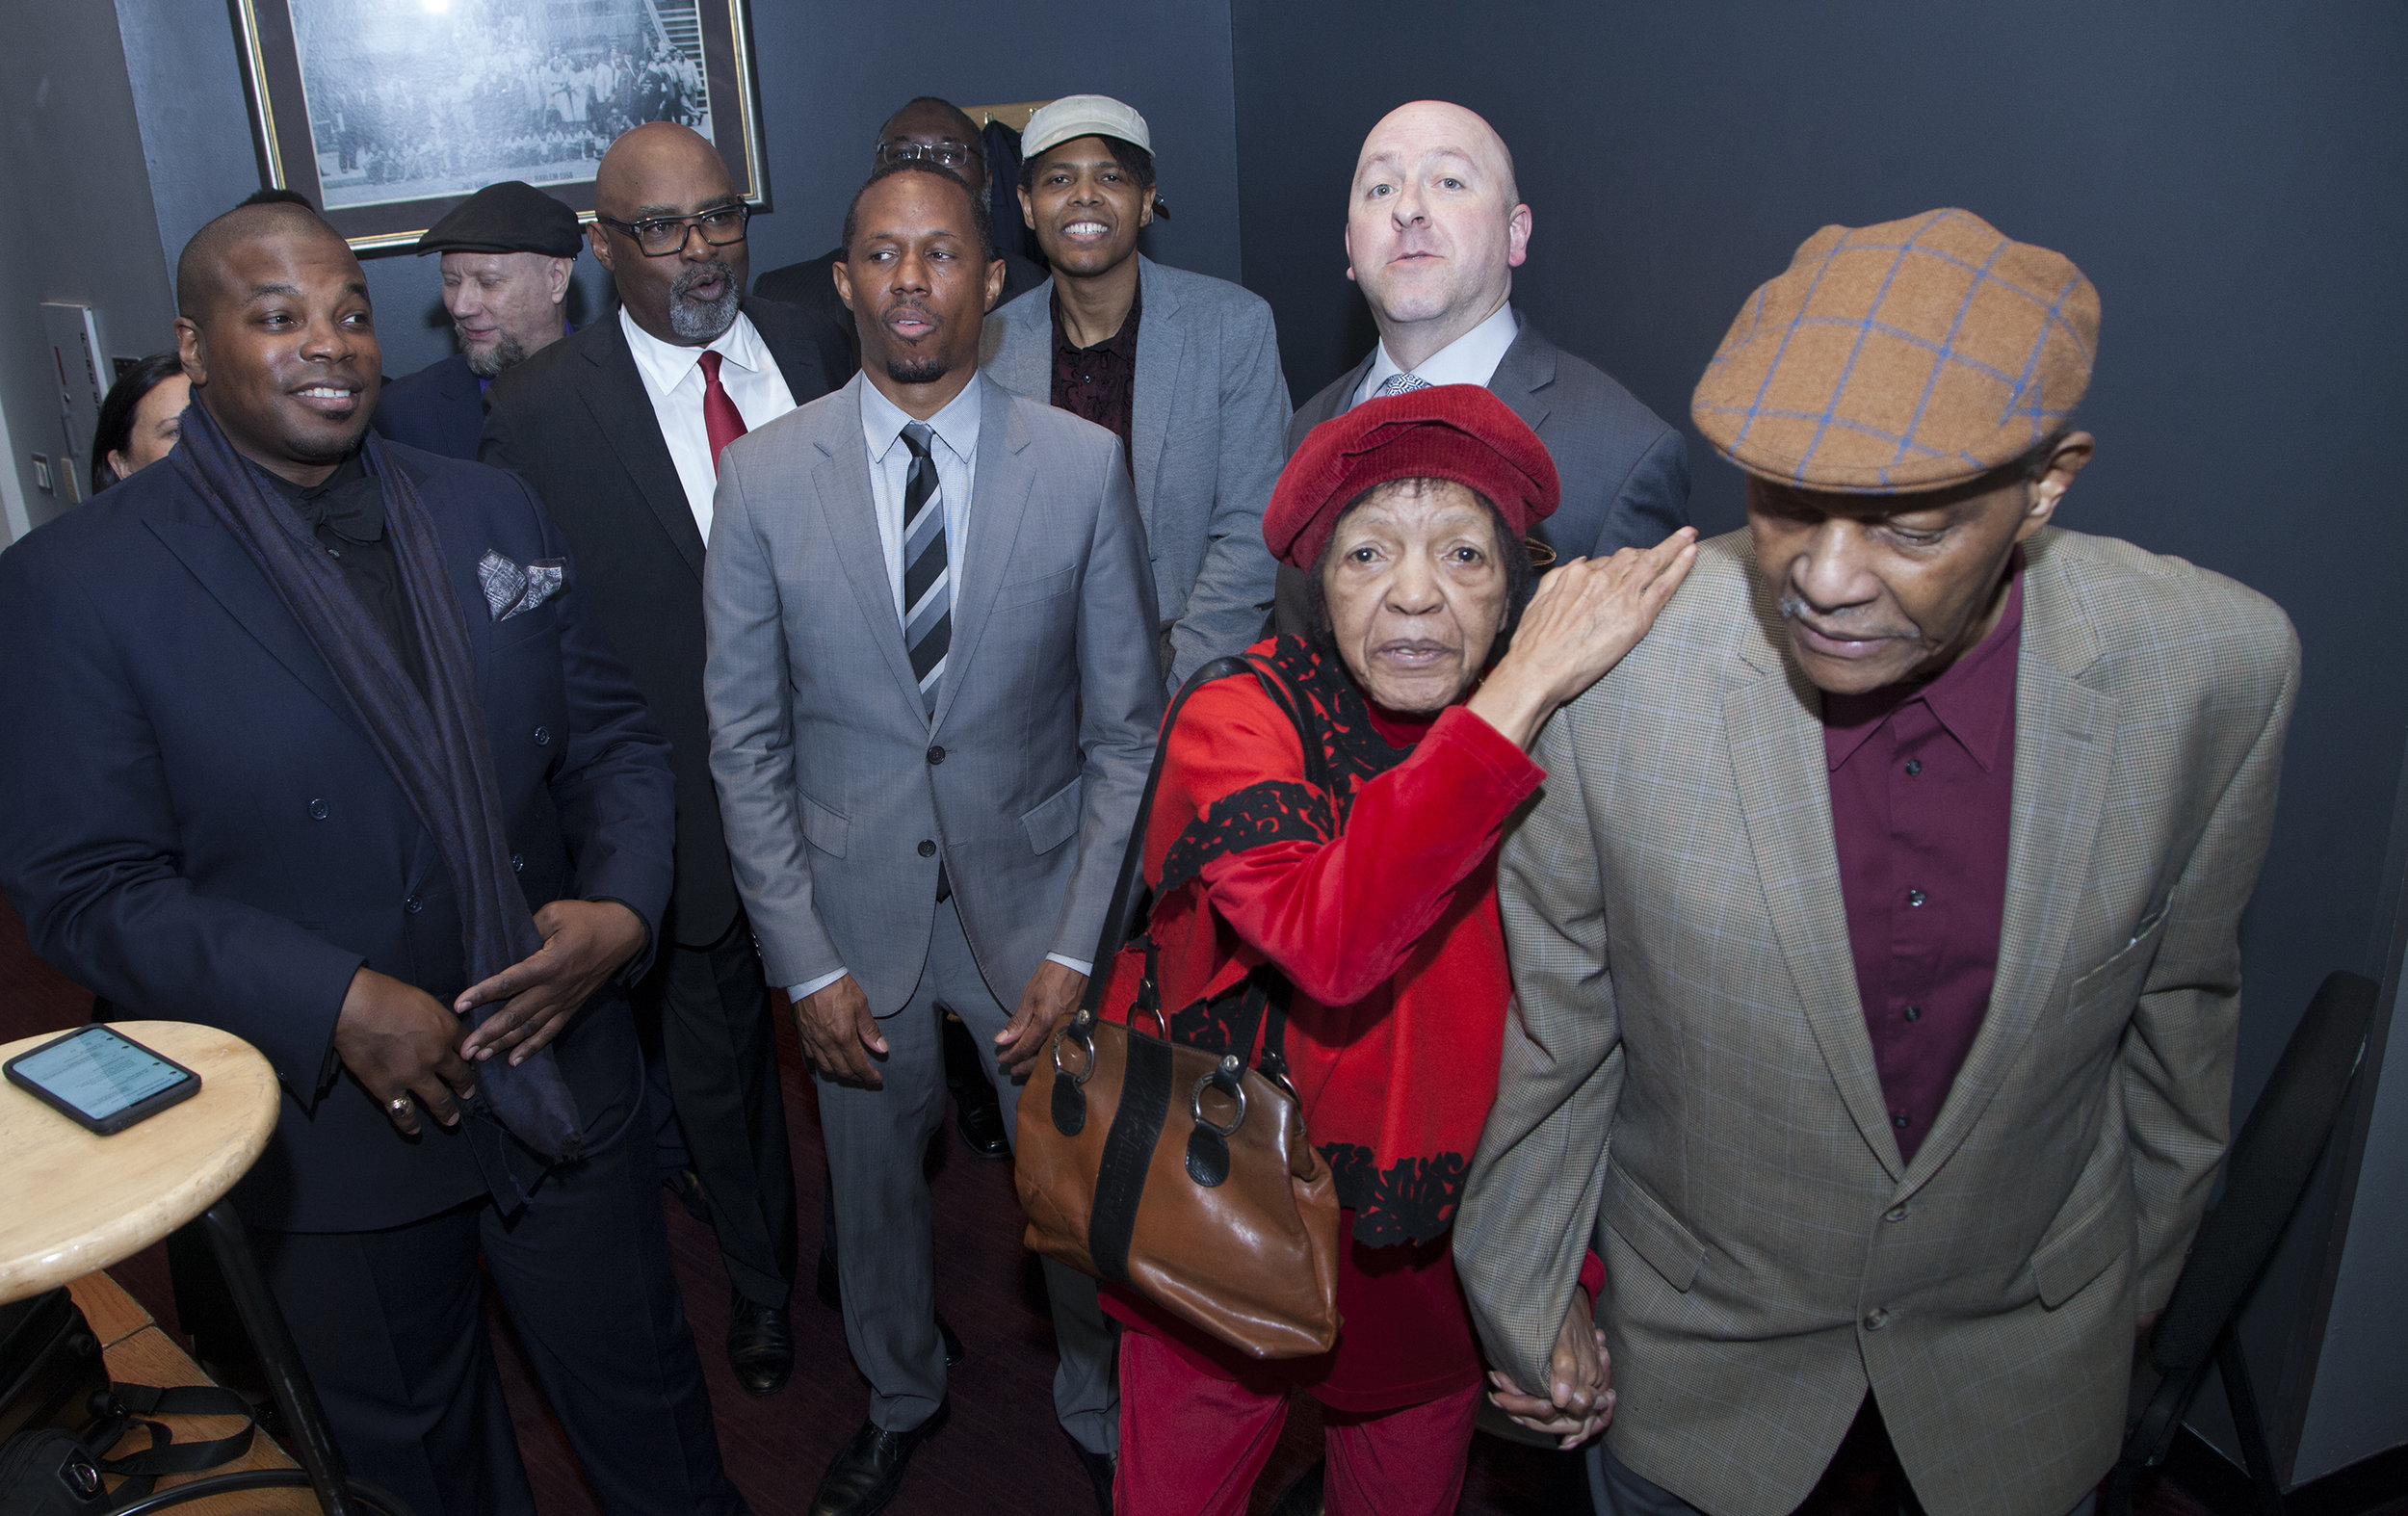 T he Band back stage @ Dizzy's Club Coca Cola with the Great McCoy Tyner & Wife Aisha & Son Deen